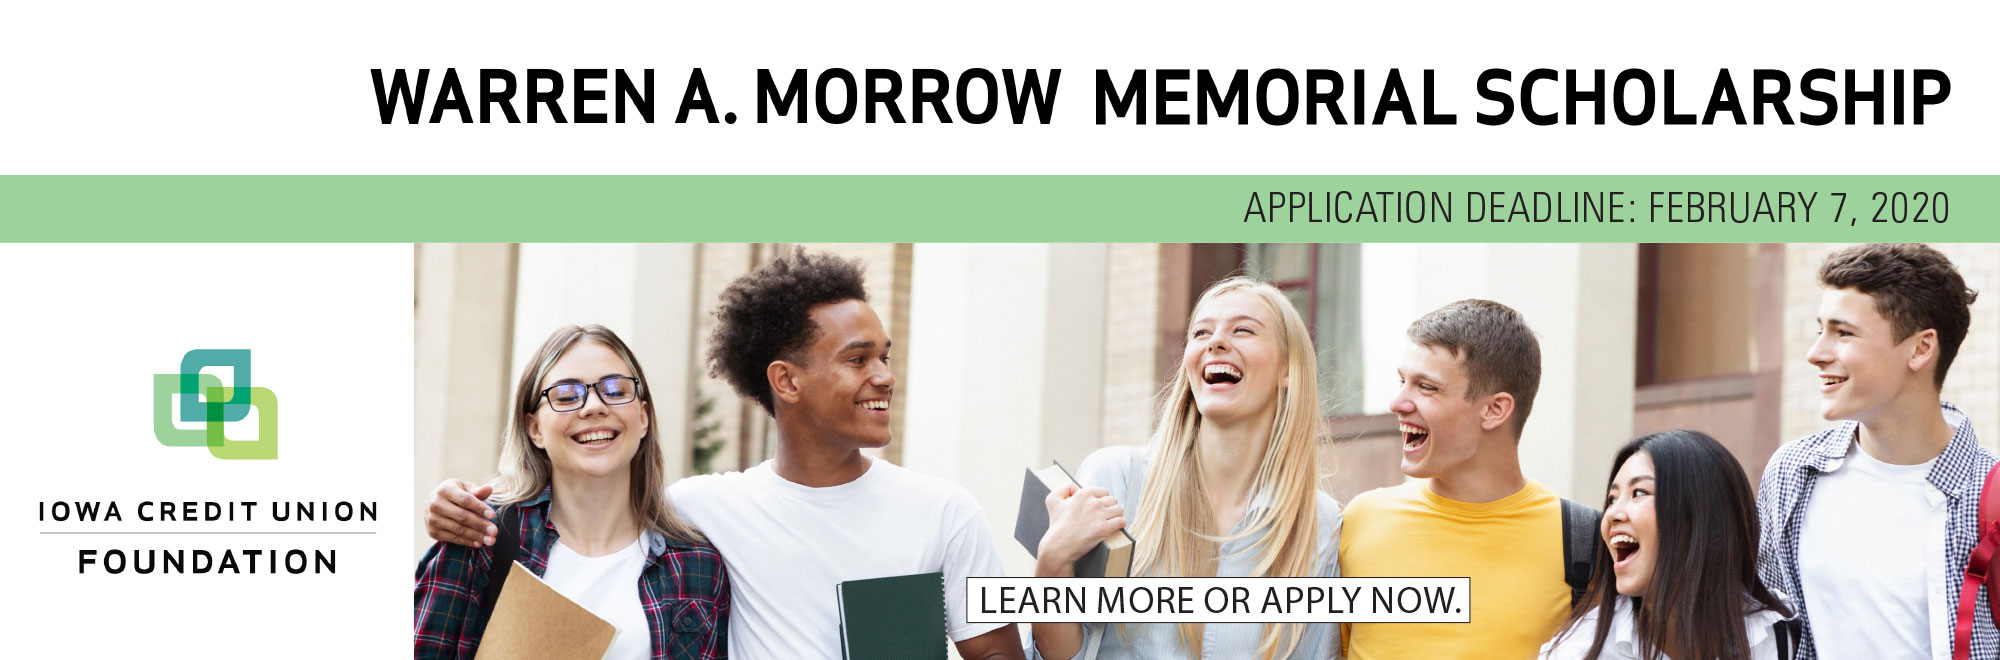 Learn more about the Warren A Morrow Memorial Scholarship. Apply by February 7, 2020.